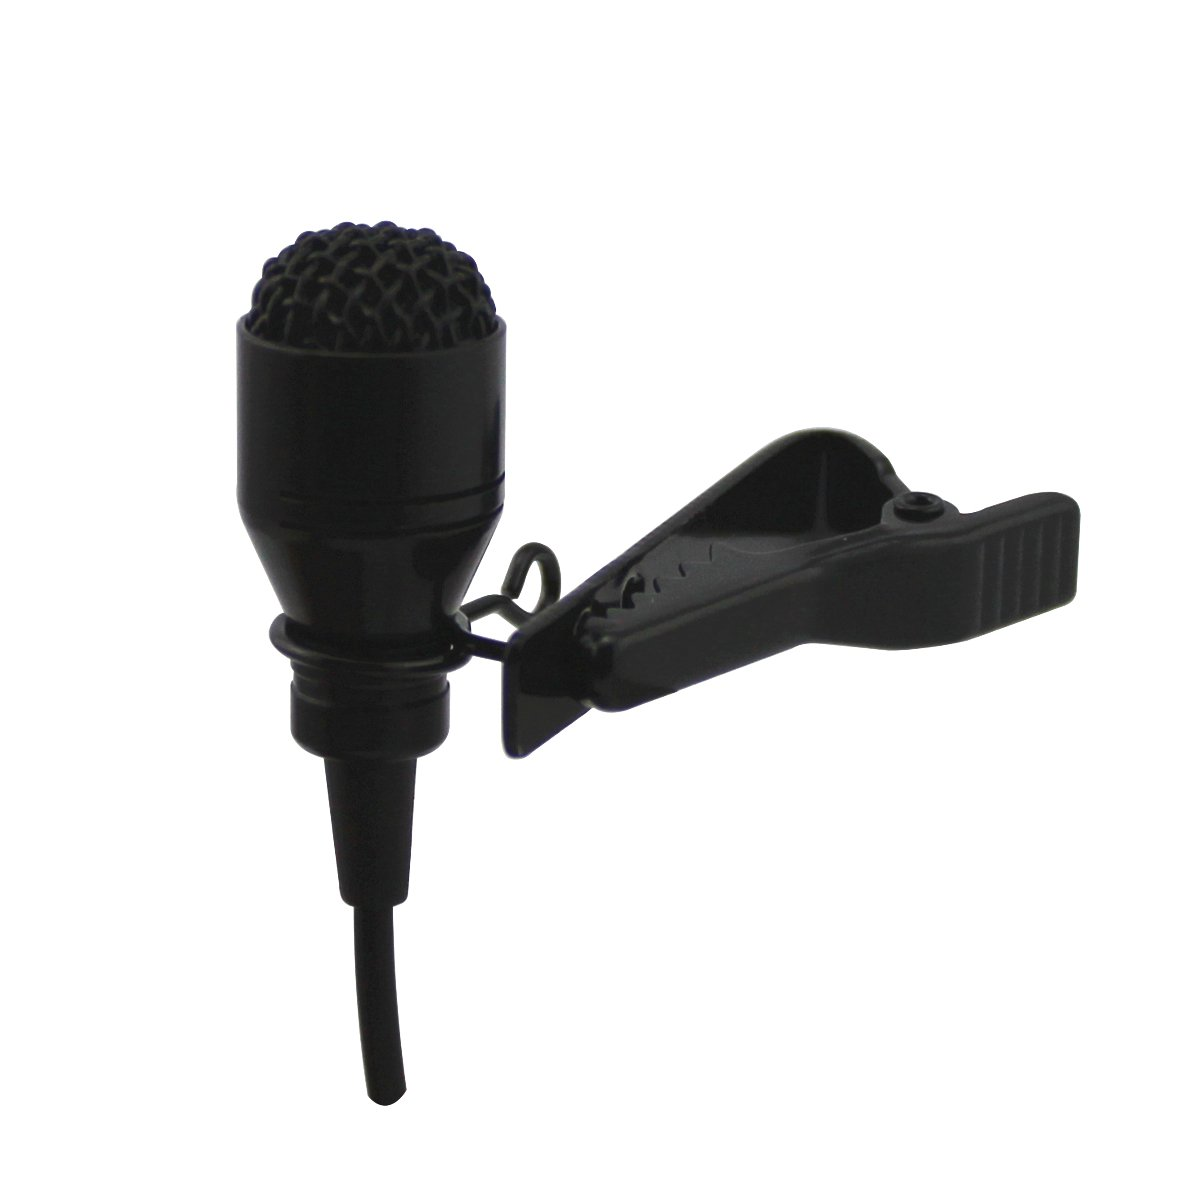 JK MIC-J 055 Lapel Microphone Lavalier Microphone Unidirectional Cardioid Condenser Microphone For Sennheiser Wireless Transmitter JK ELECTRONICS 4330238736